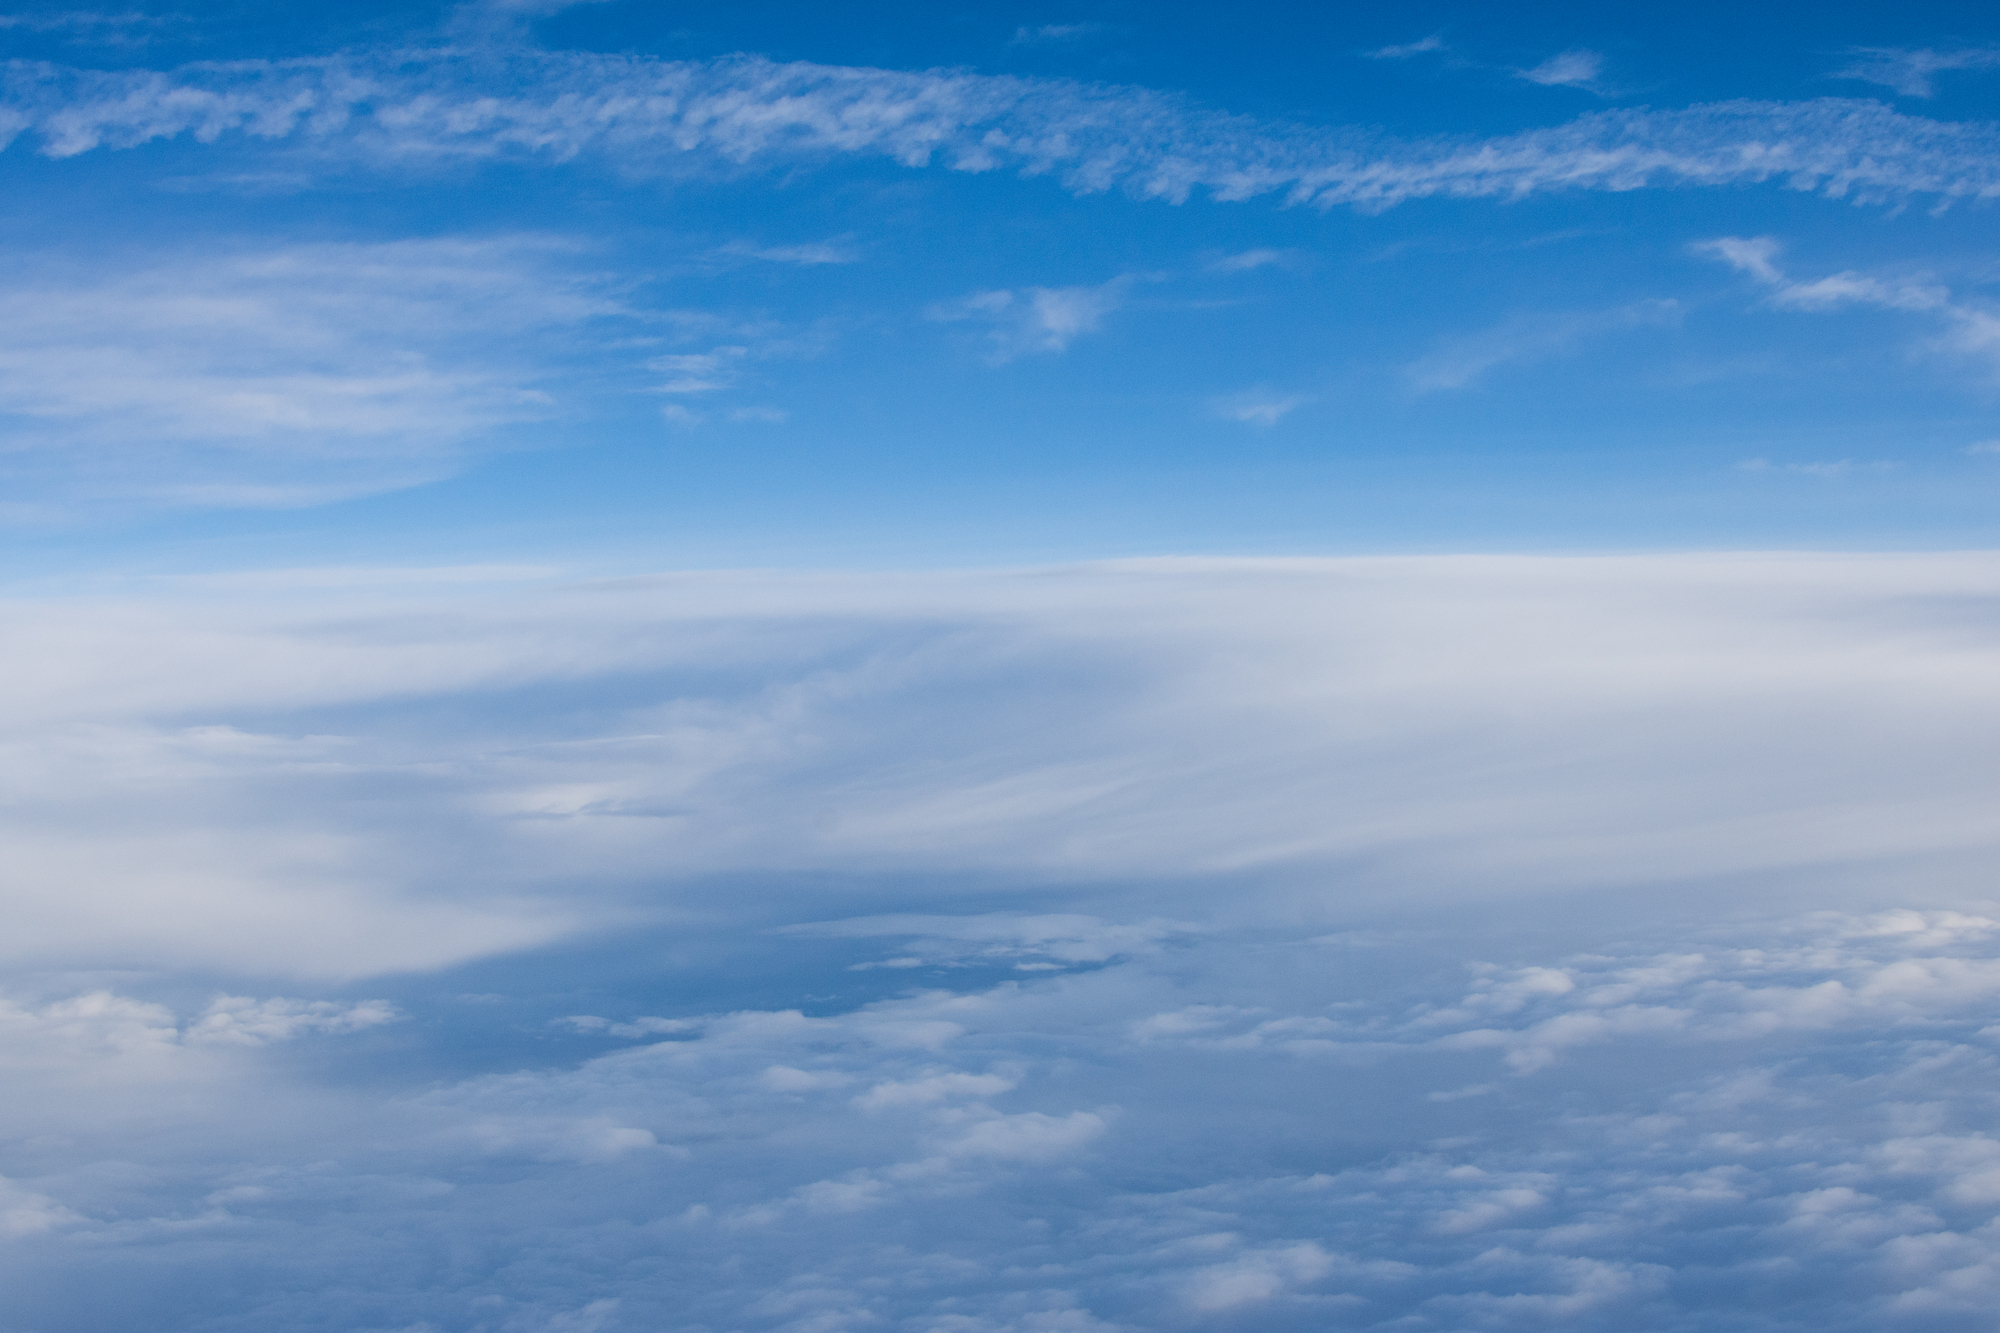 Saving the ozone layer drastically reduced climate change effects